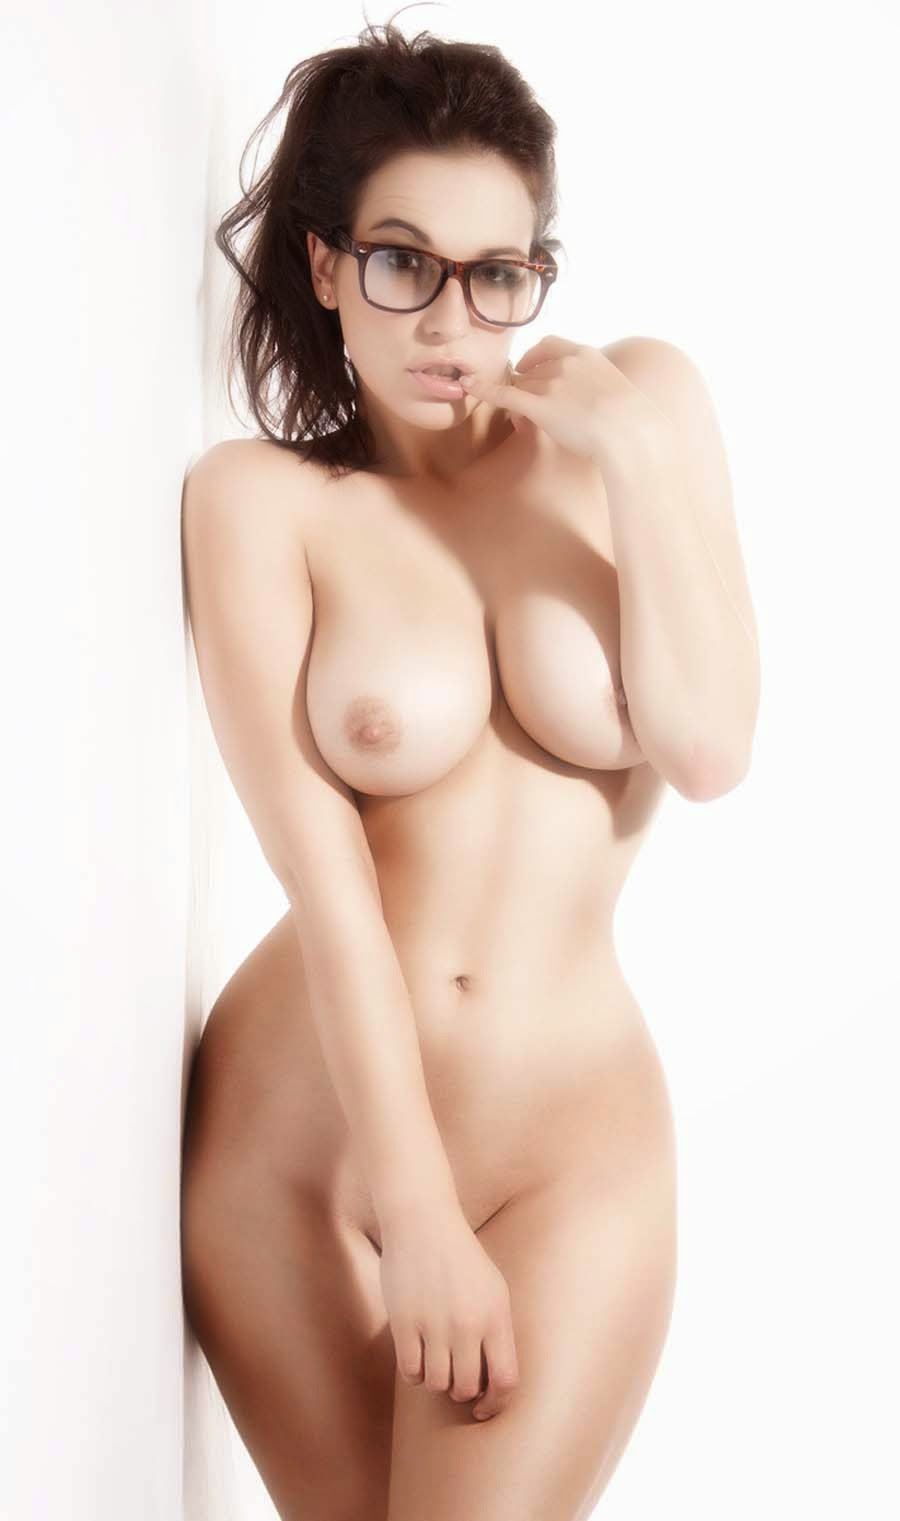 past playboy centerfolds nude